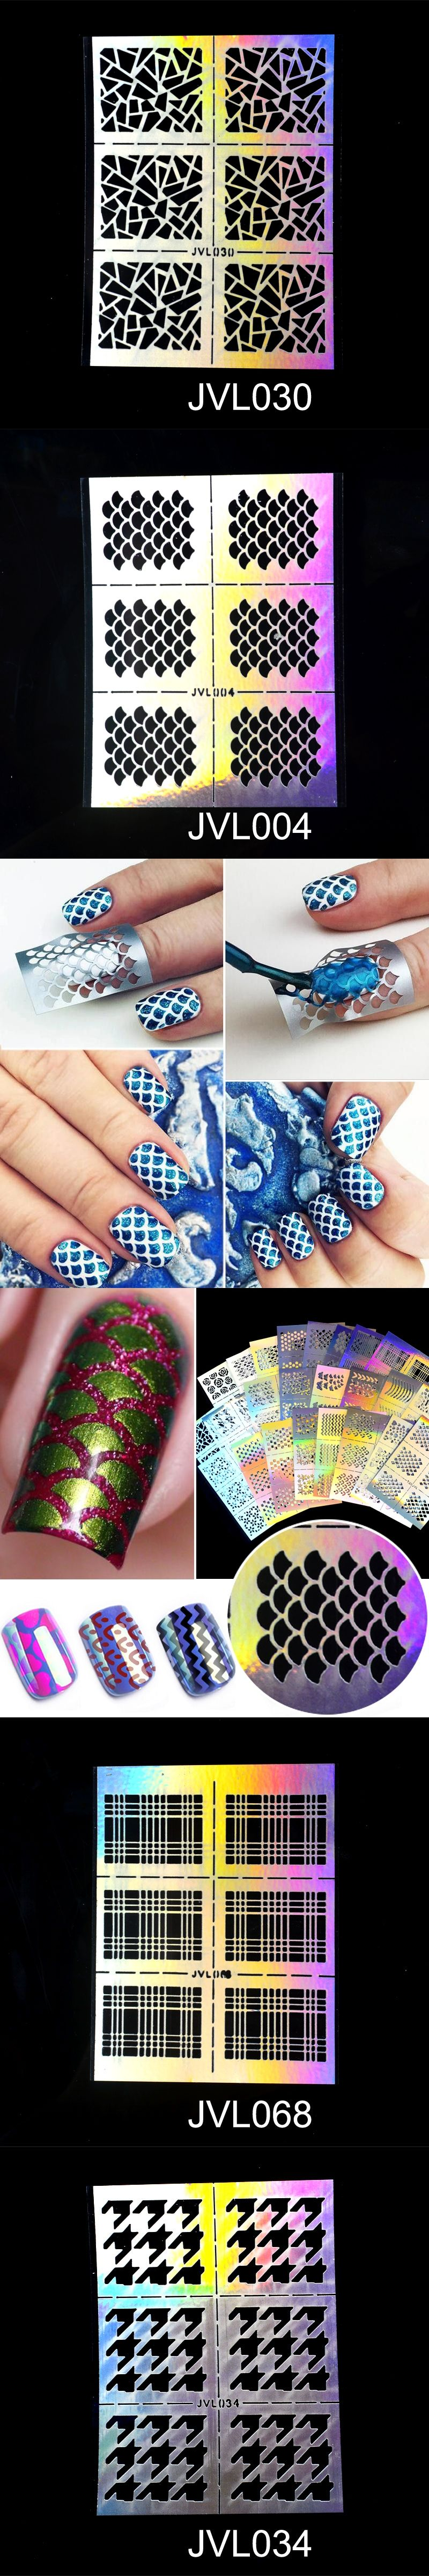 ZKO 1Pc Hollow Out Nail Art DIY Tips Guides Transfer Stickers ...